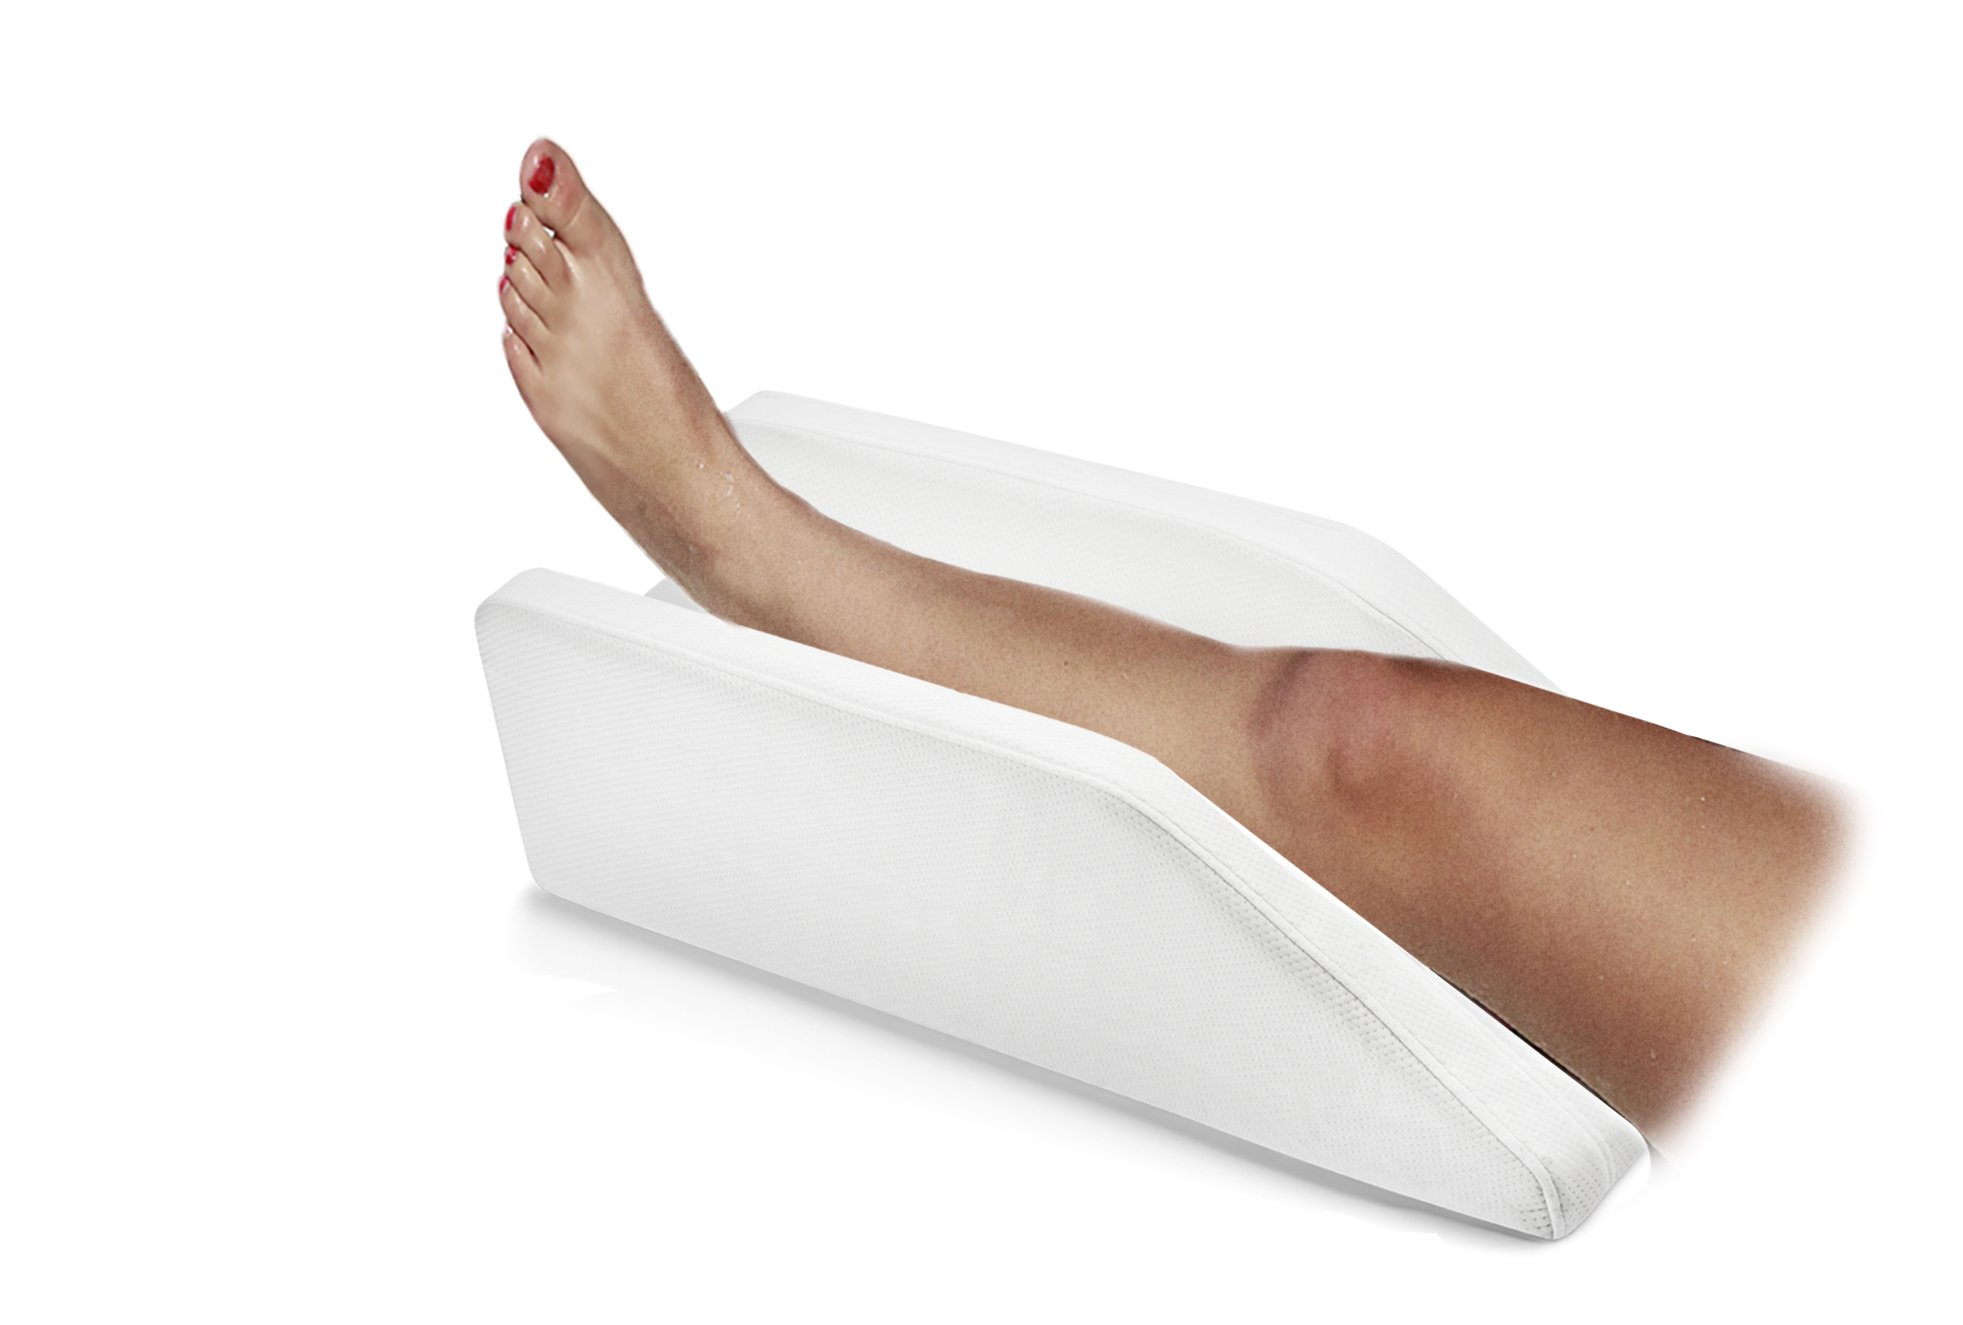 Pure Comfort Leg, Knee, Ankle Support and Elevation Pillow | Surgery | Injury | Rest | (Standard)